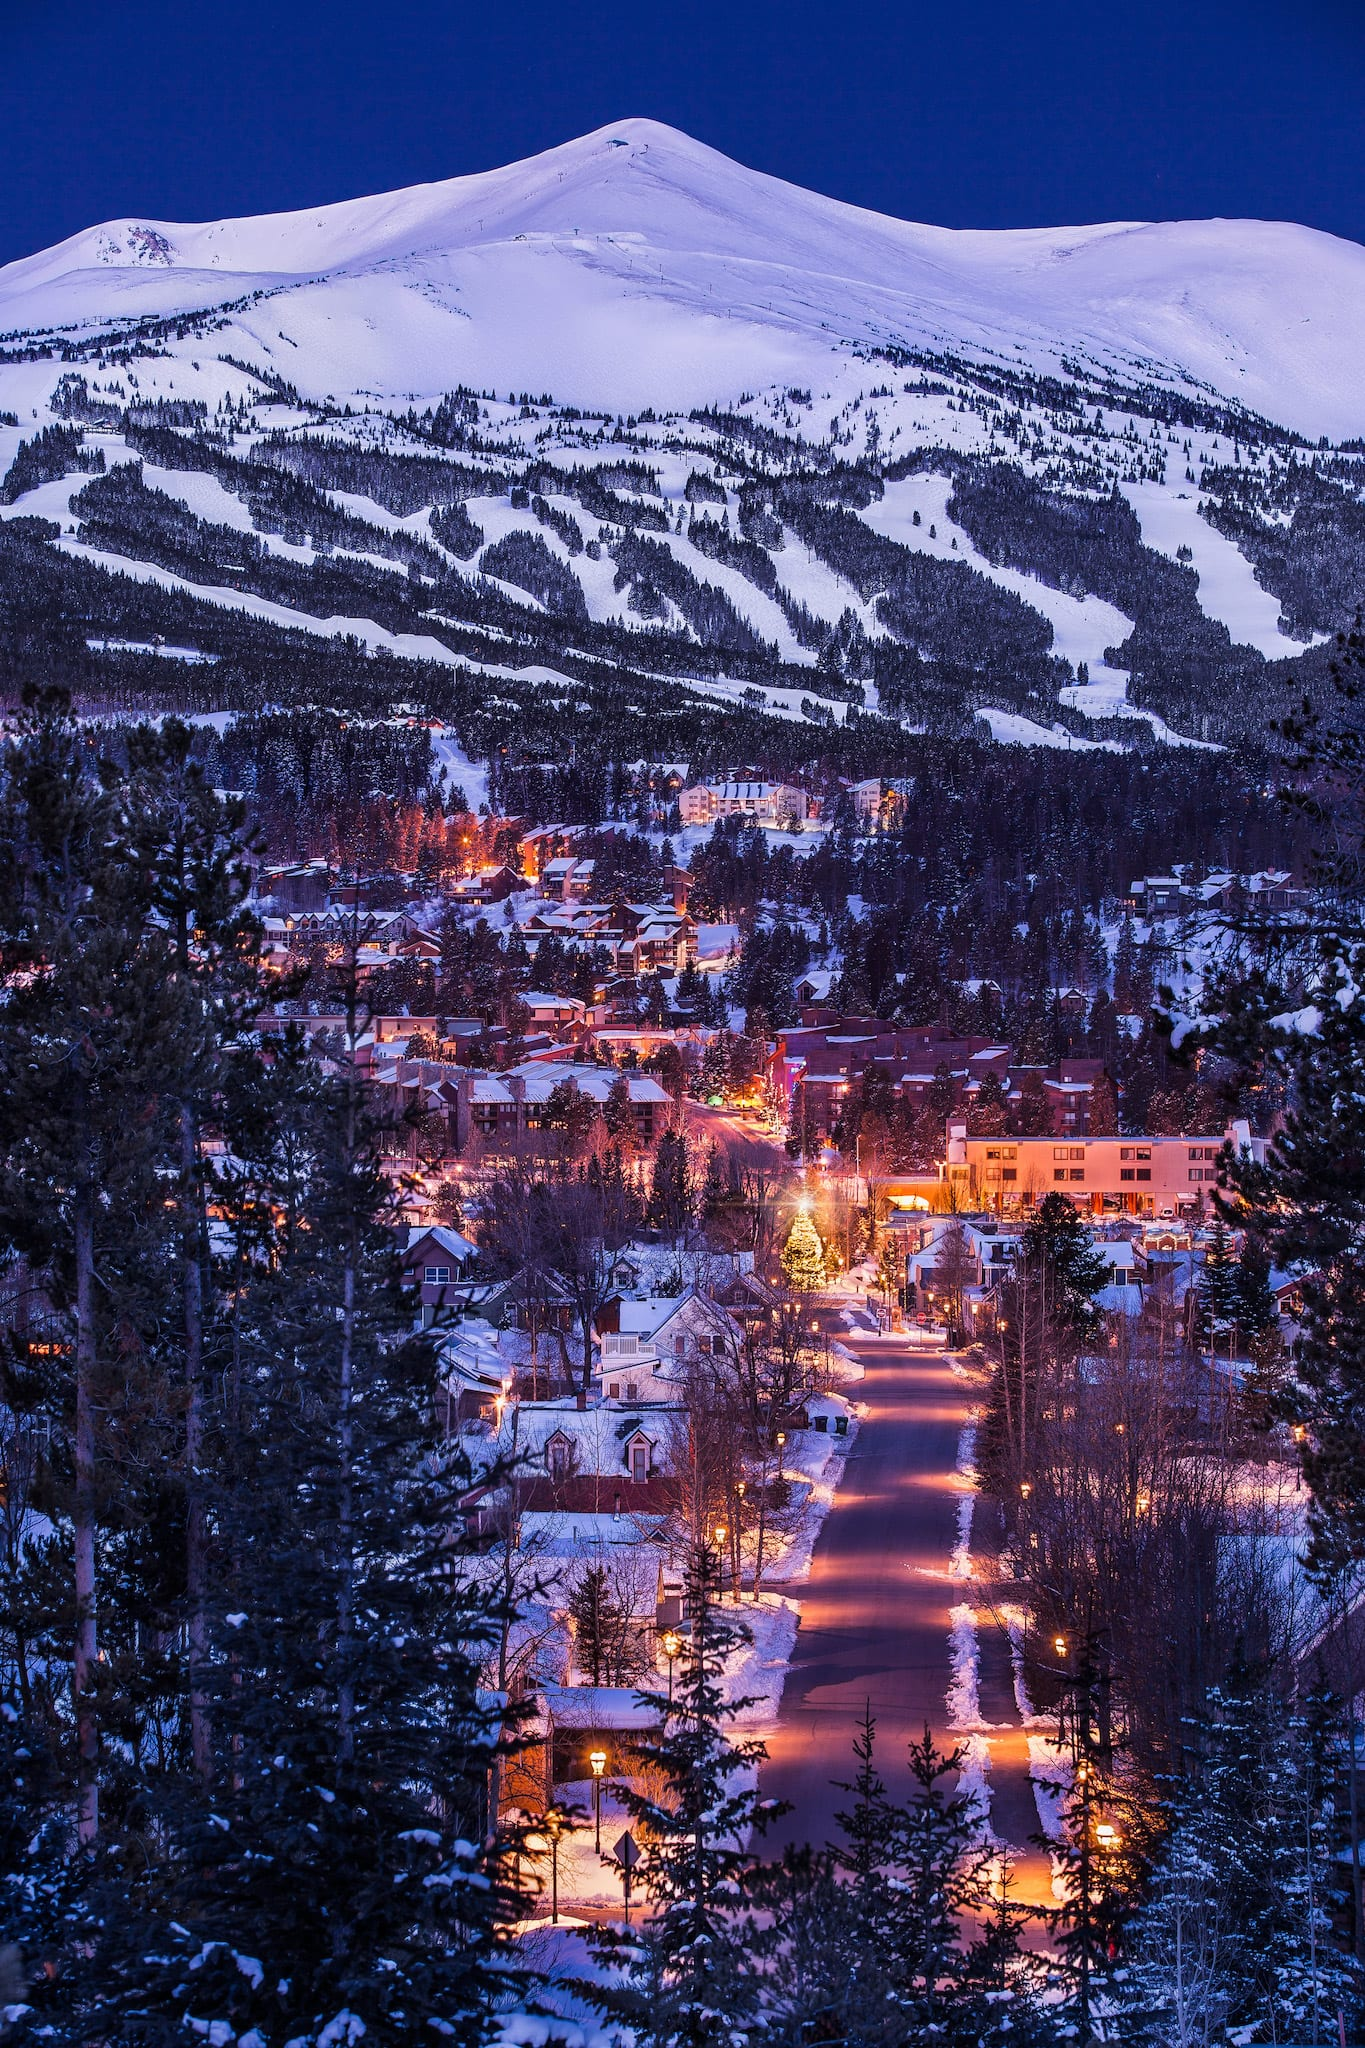 Breckenridge Ski Resort and Downtown Breck at Dawn